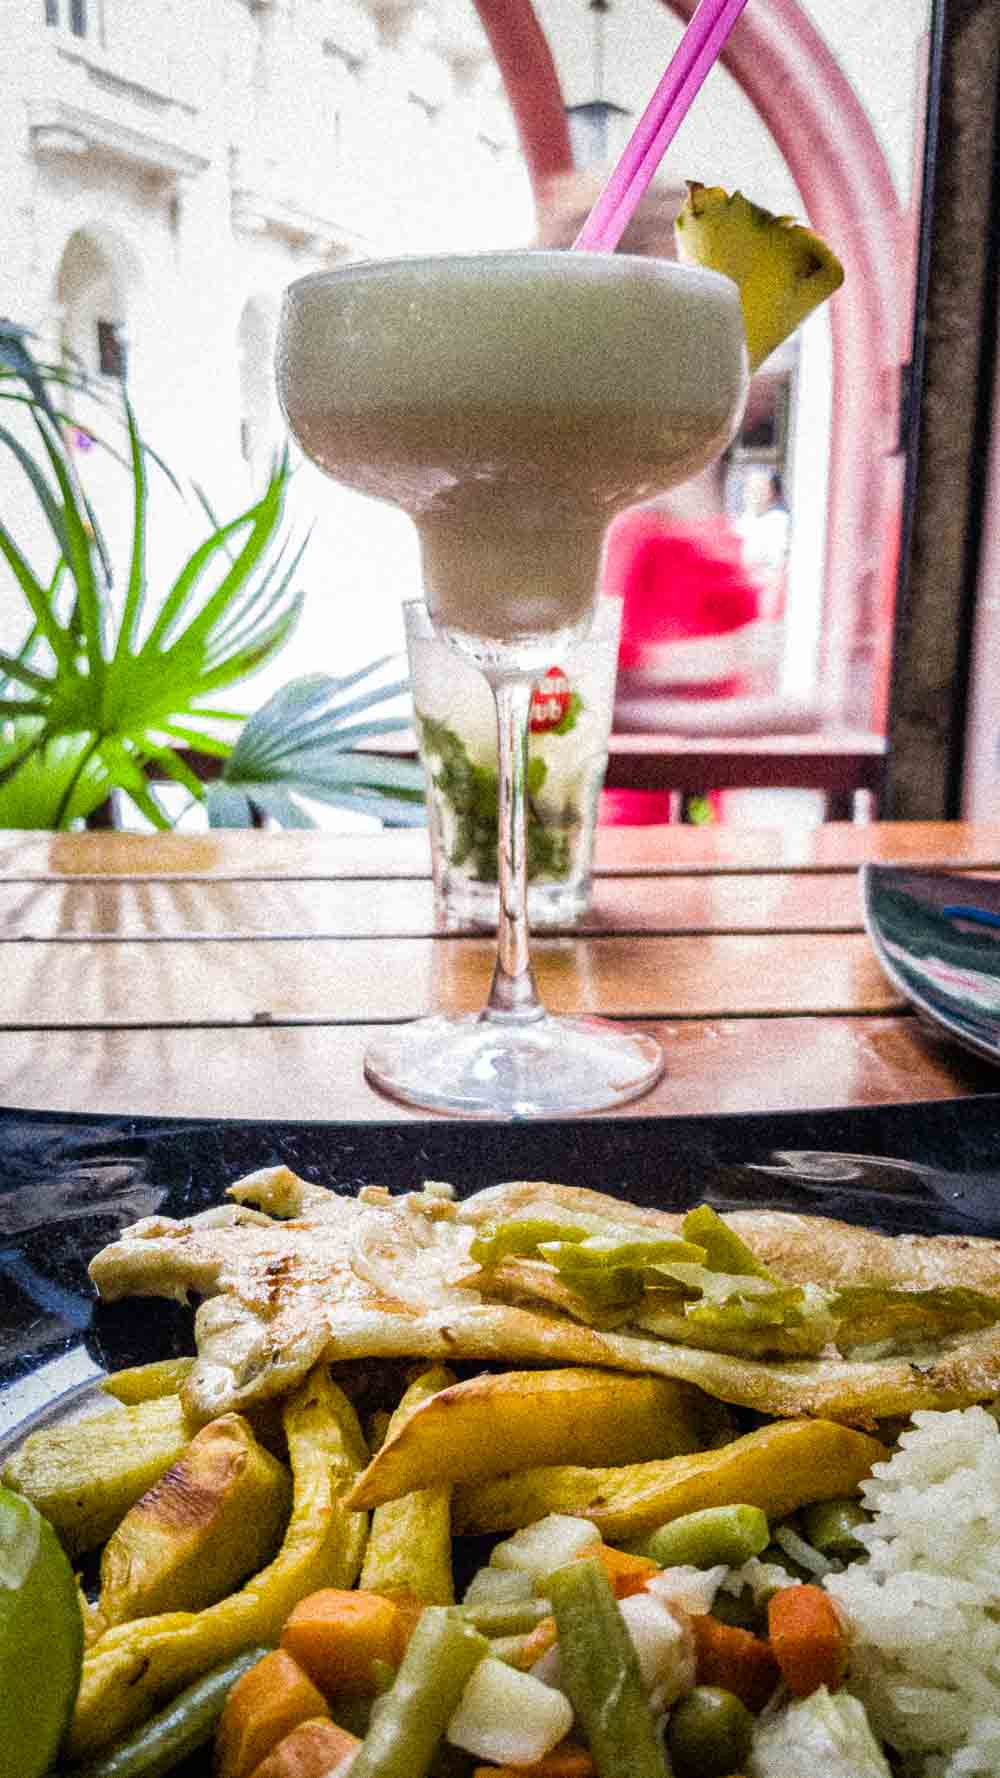 Piña Colada and Seafood at Bar Monserrate in Havana Cuba